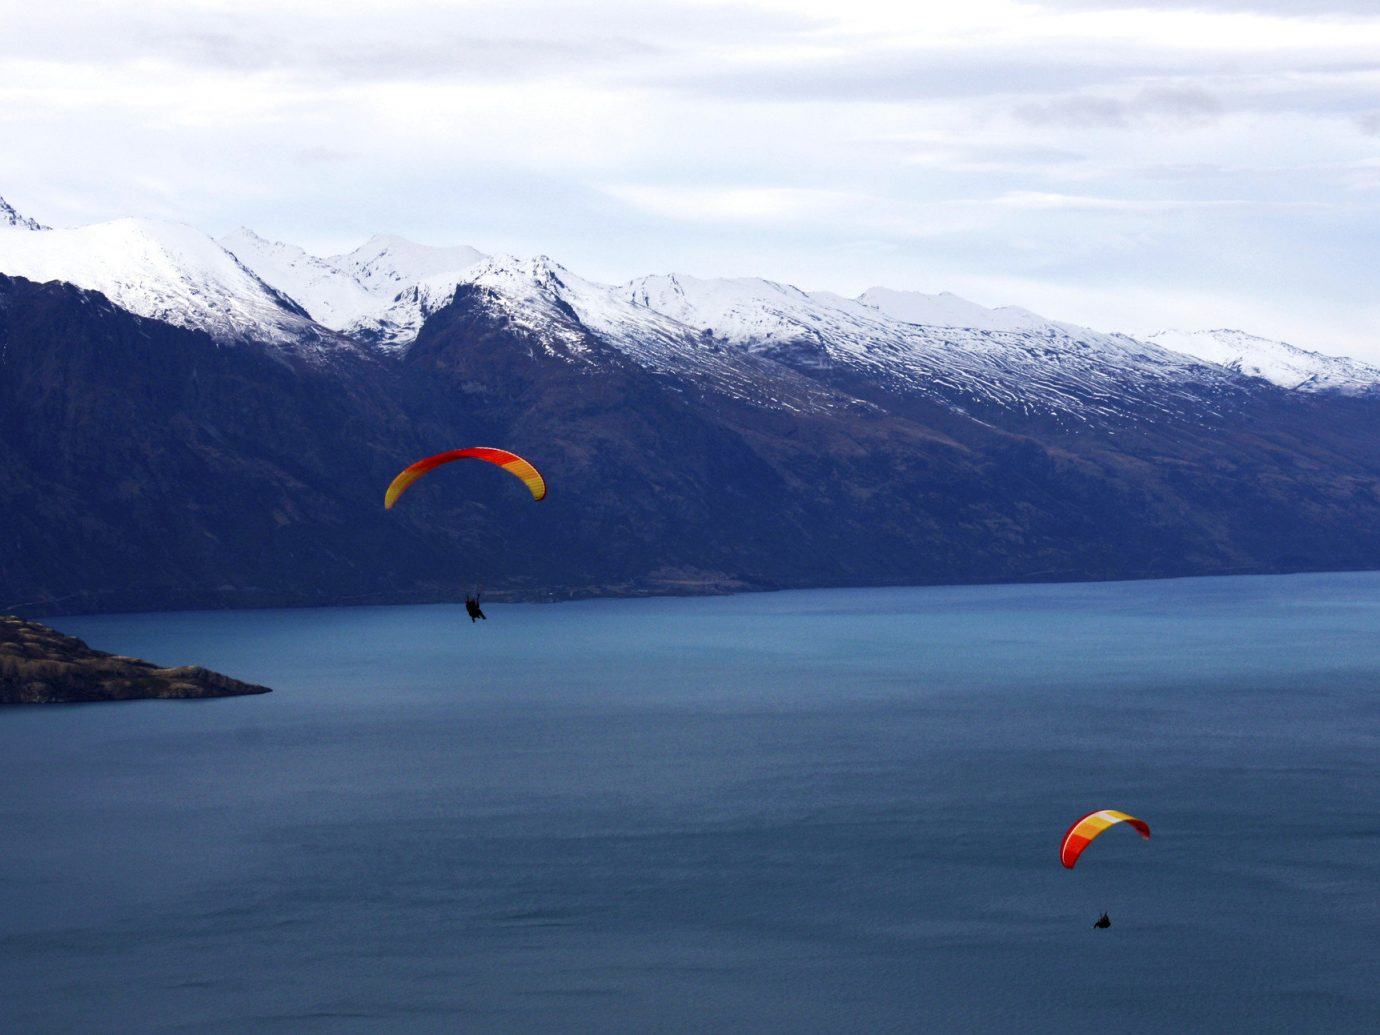 Offbeat Trip Ideas water sky mountain outdoor paragliding air sports sports Nature Lake windsports atmosphere of earth Ocean Sea flight extreme sport parachuting distance day